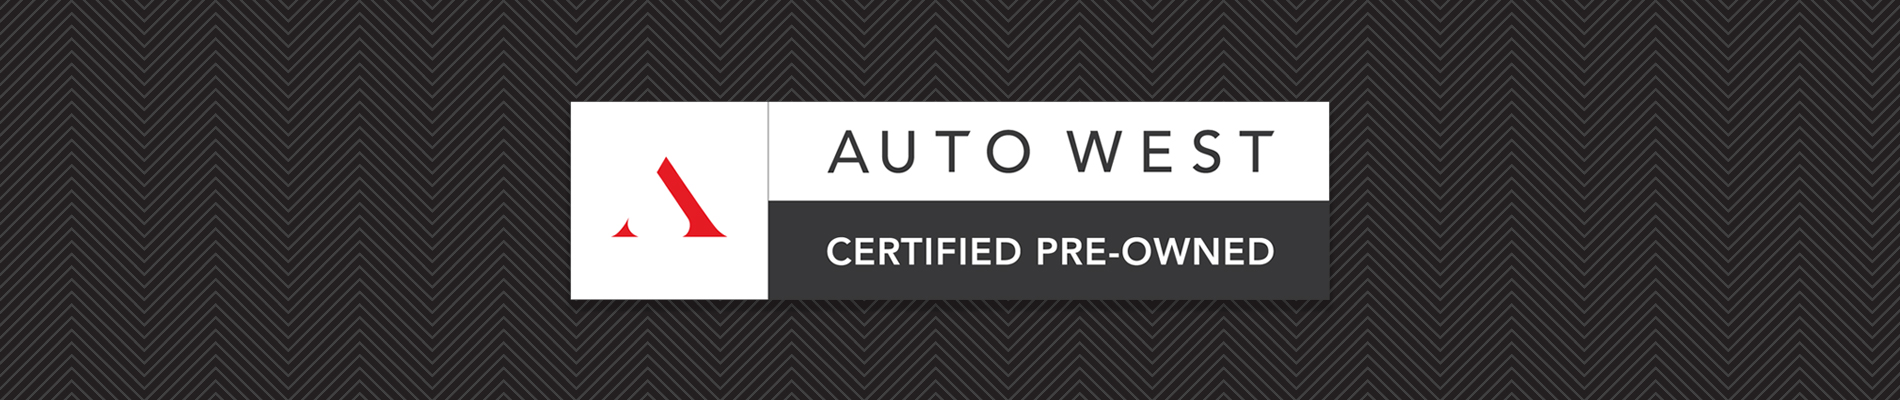 Certified Pre Owned Warranty at Auto West BMW, BC